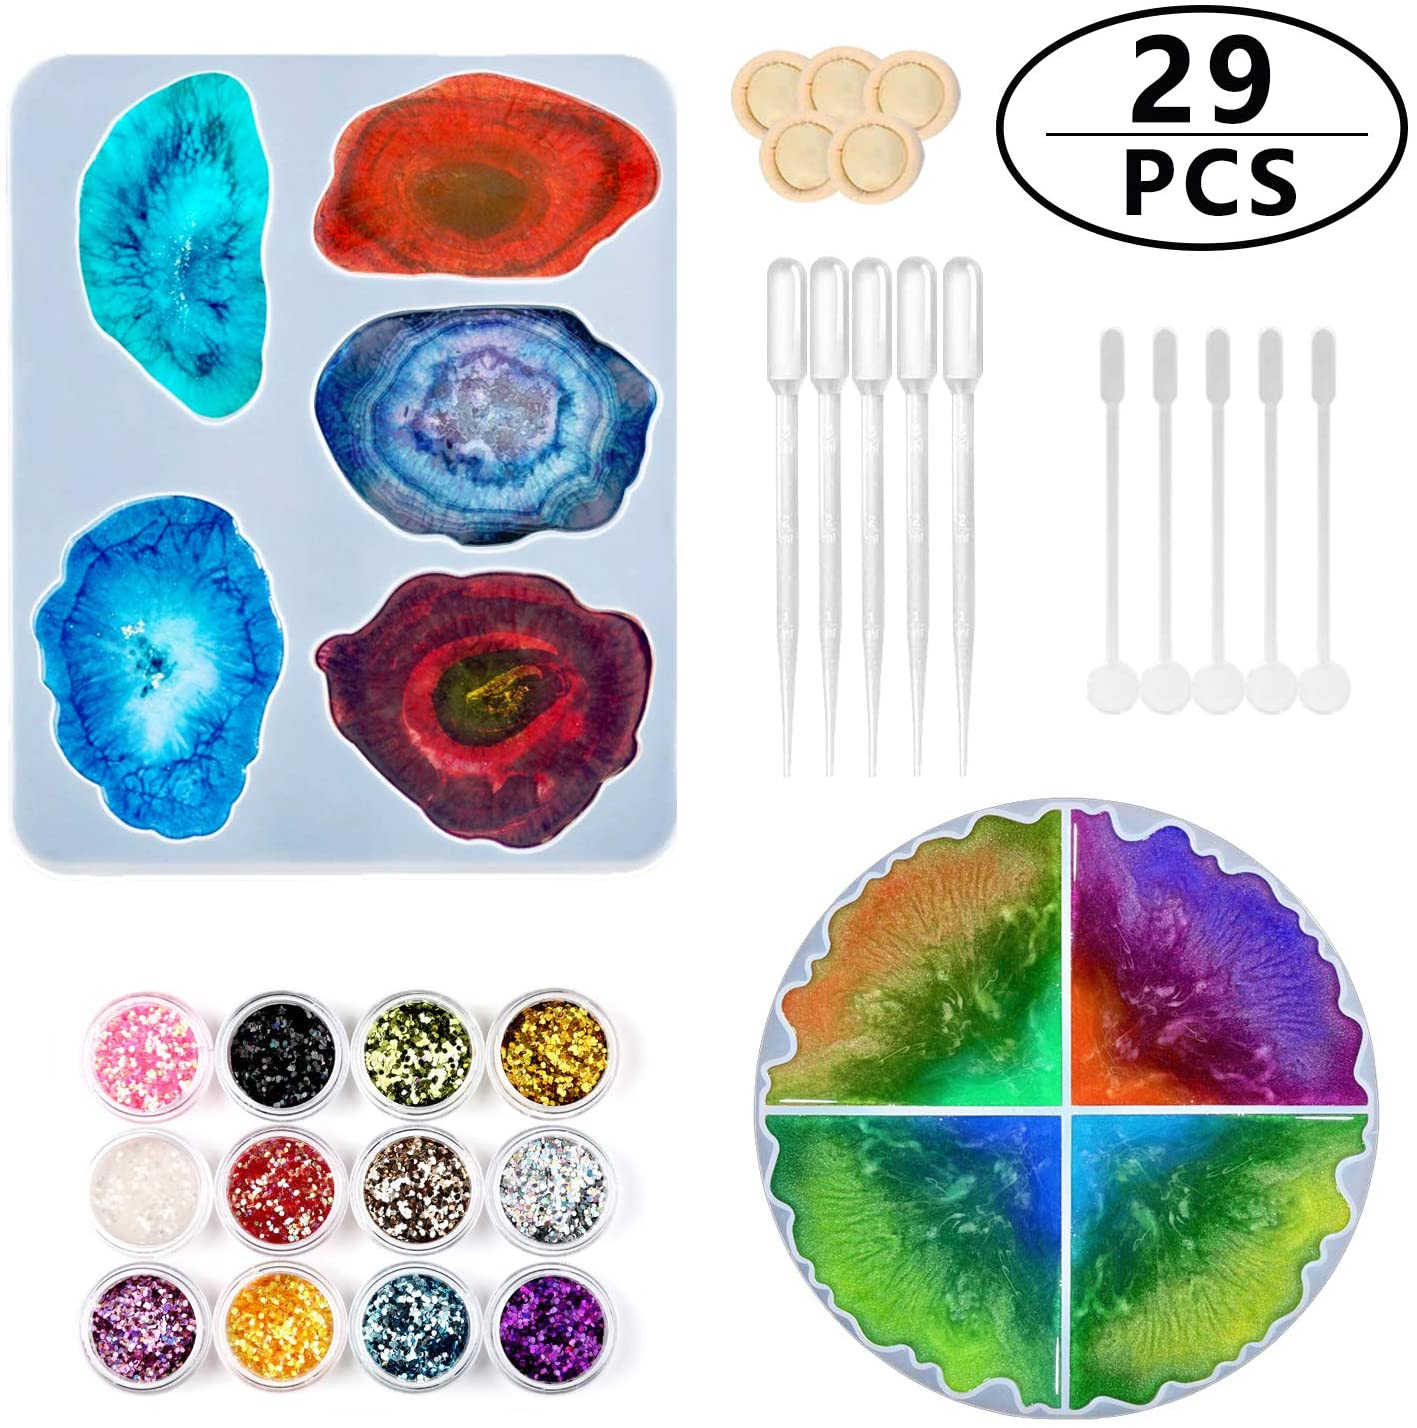 29 PCS Silicone Resin Molds Set, 2 PCS Large Size Irregular Coaster Molds,12 PCS Glitter Sequins and 15 PCS Resin Tools Kit for DIY Making Coasters Cups Mats Home Decoration